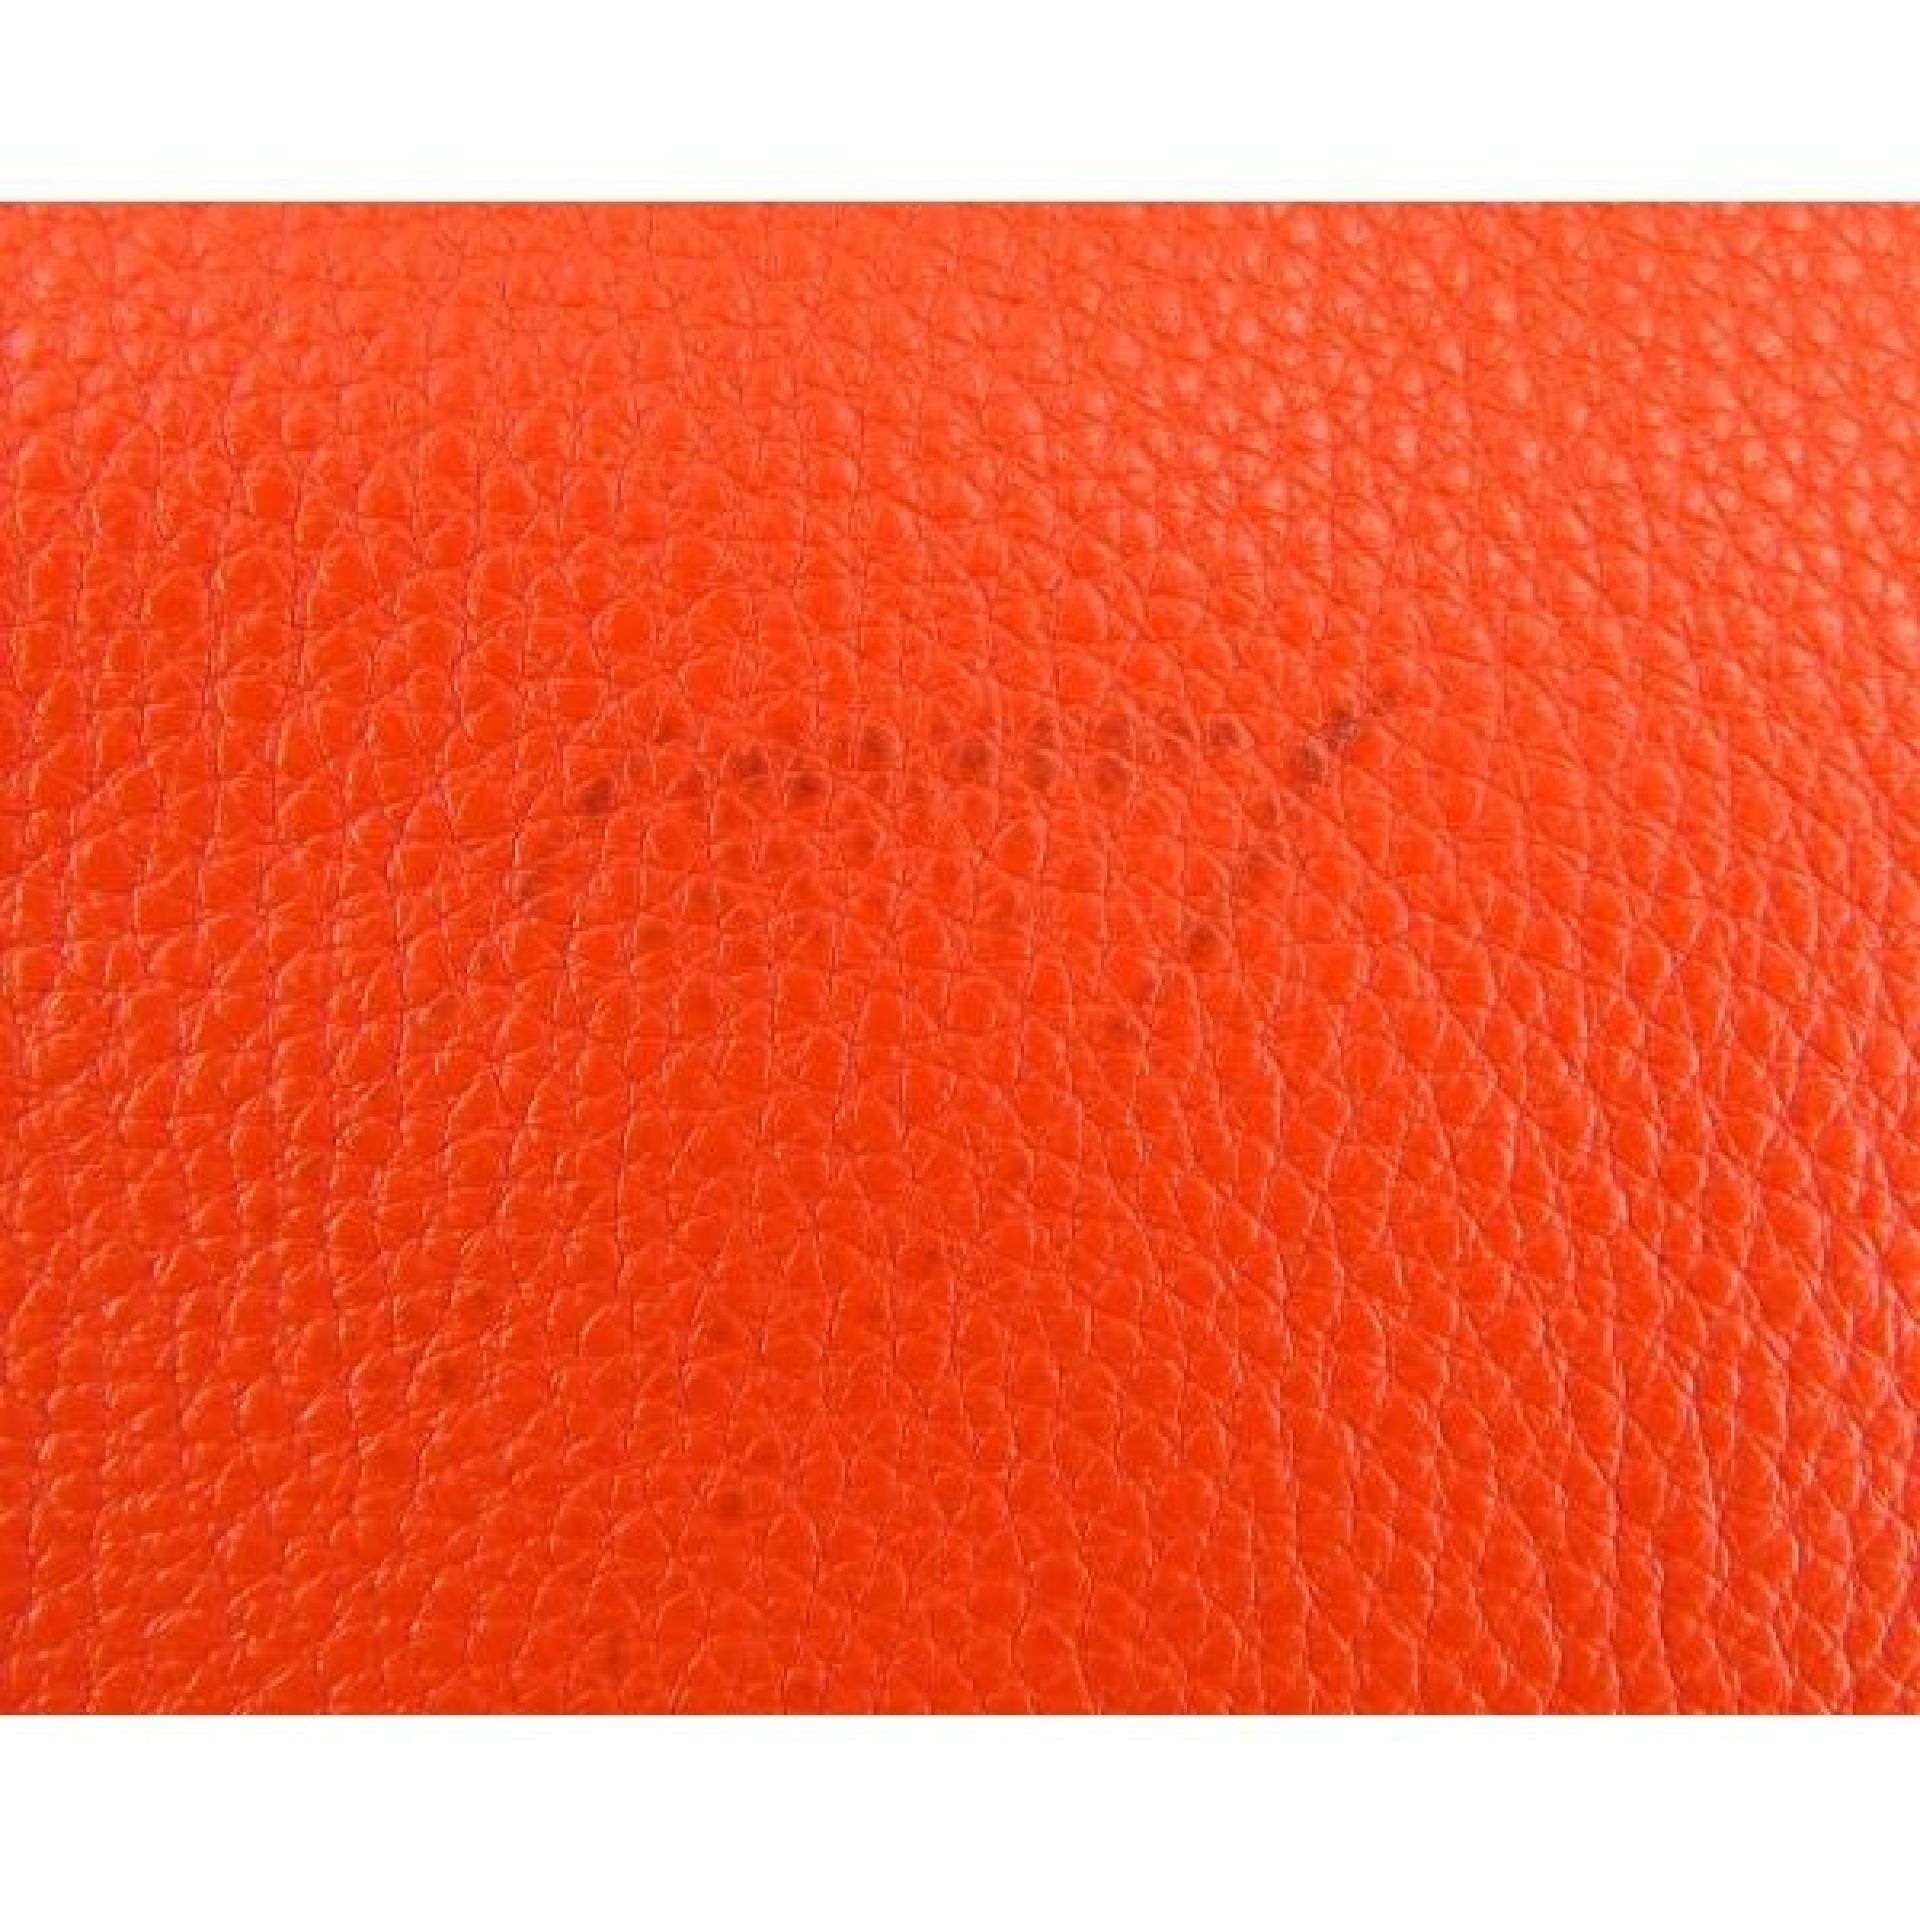 Tory Burch Orange Leather Marion Tote Bag